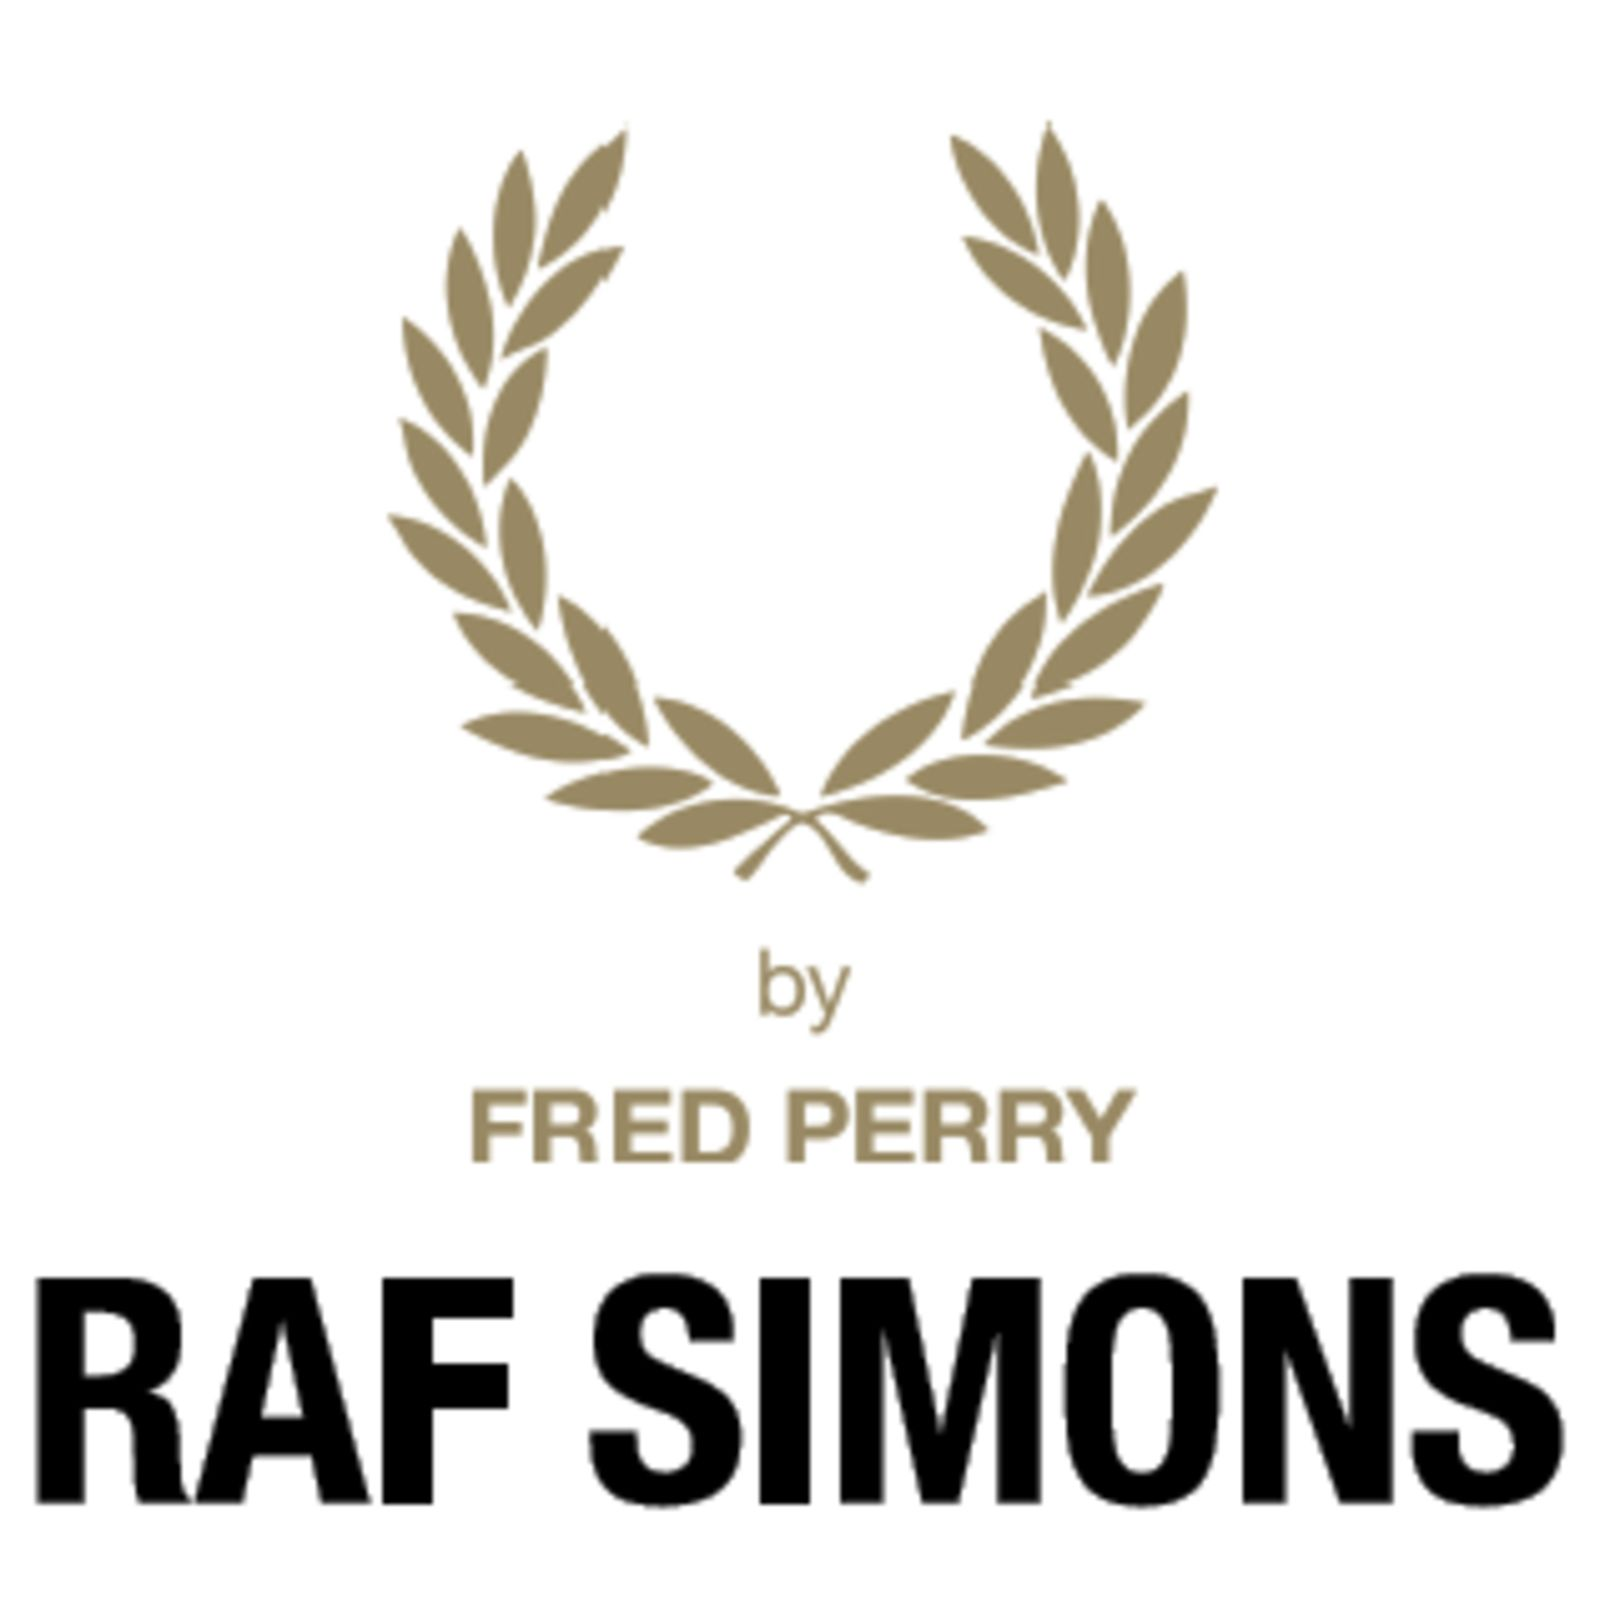 FRED PERRY Laurel Wreath | RAF SIMONS (Image 1)